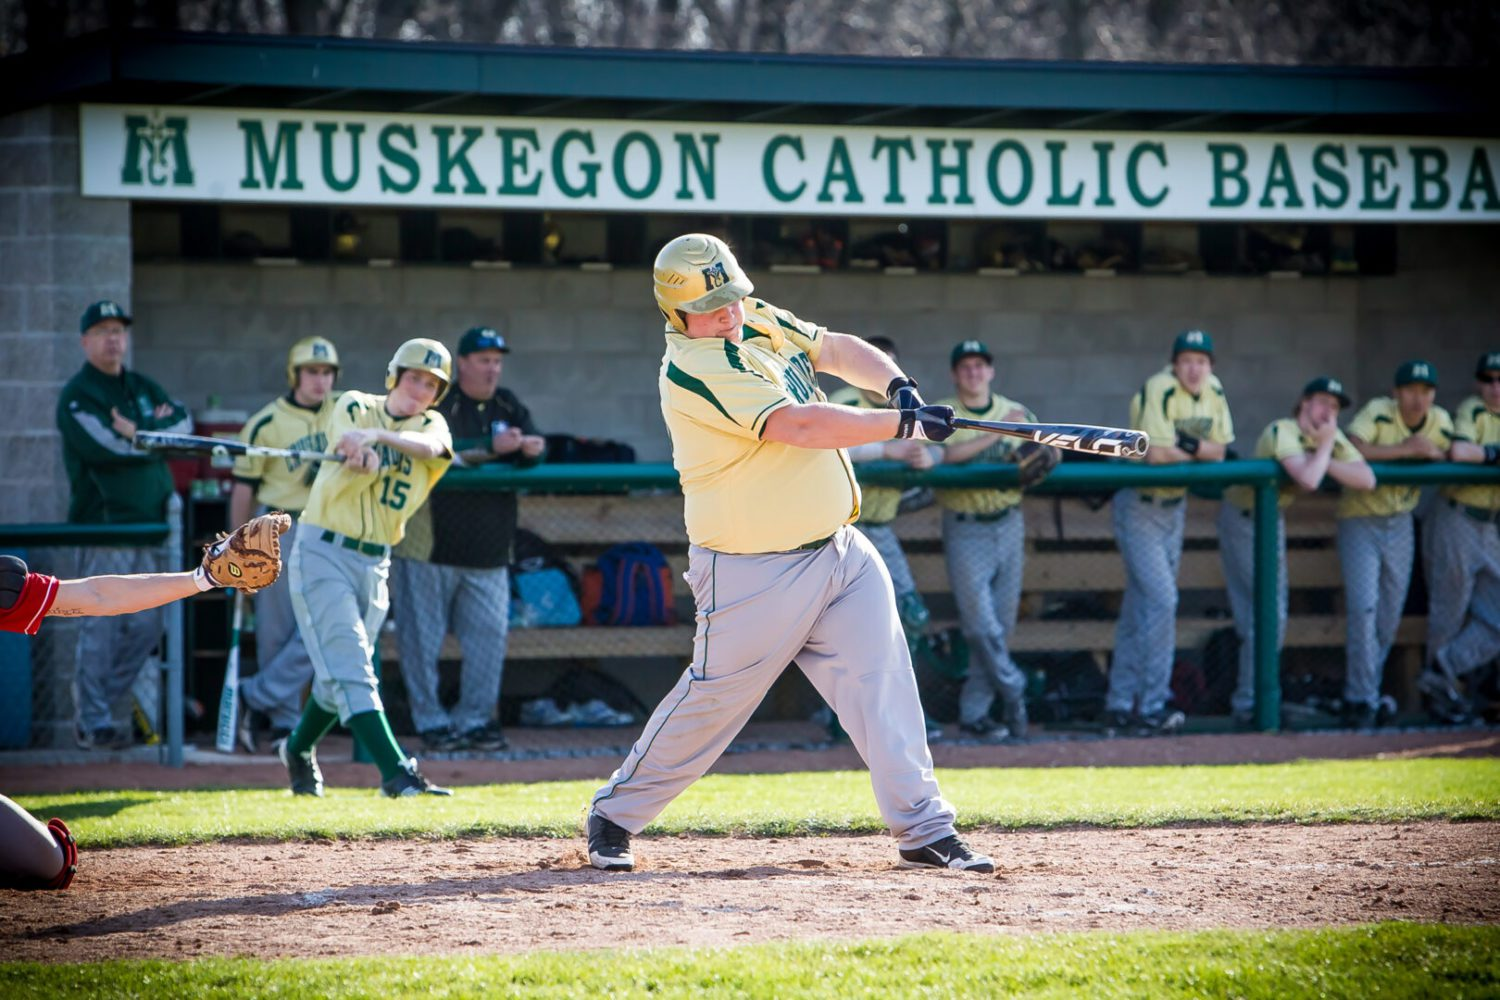 Highlights from Muskegon Catholic's win over Gobles in the baseball regional semifinals [VIDEO]